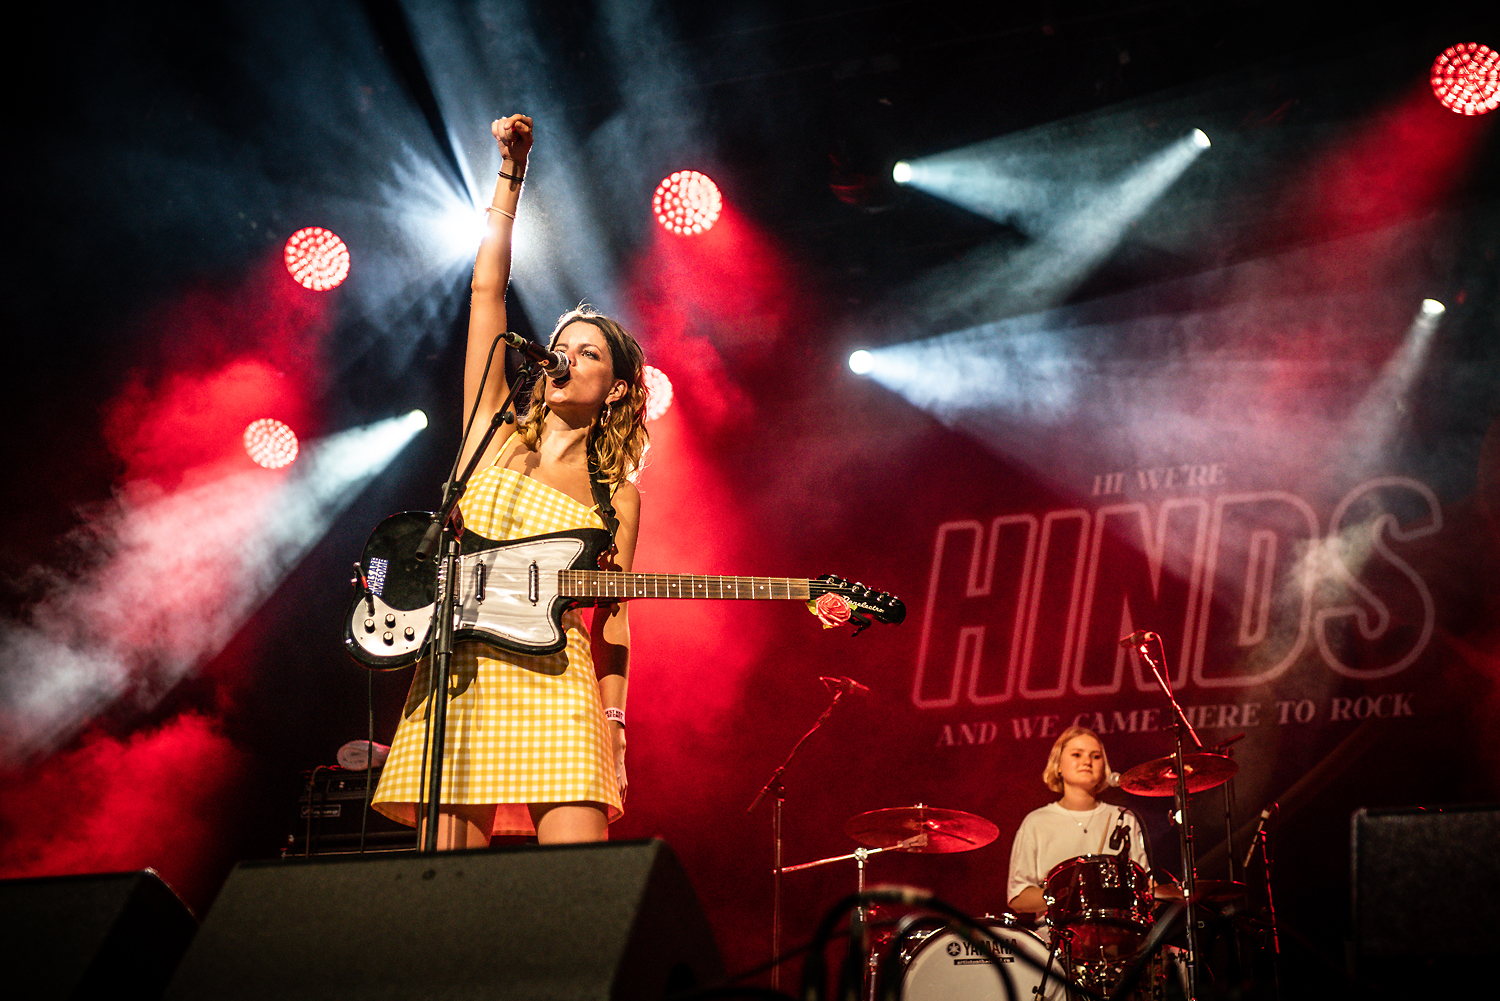 Hinds @ Best Kept Secret 2018 (Jan Van den Bulck)